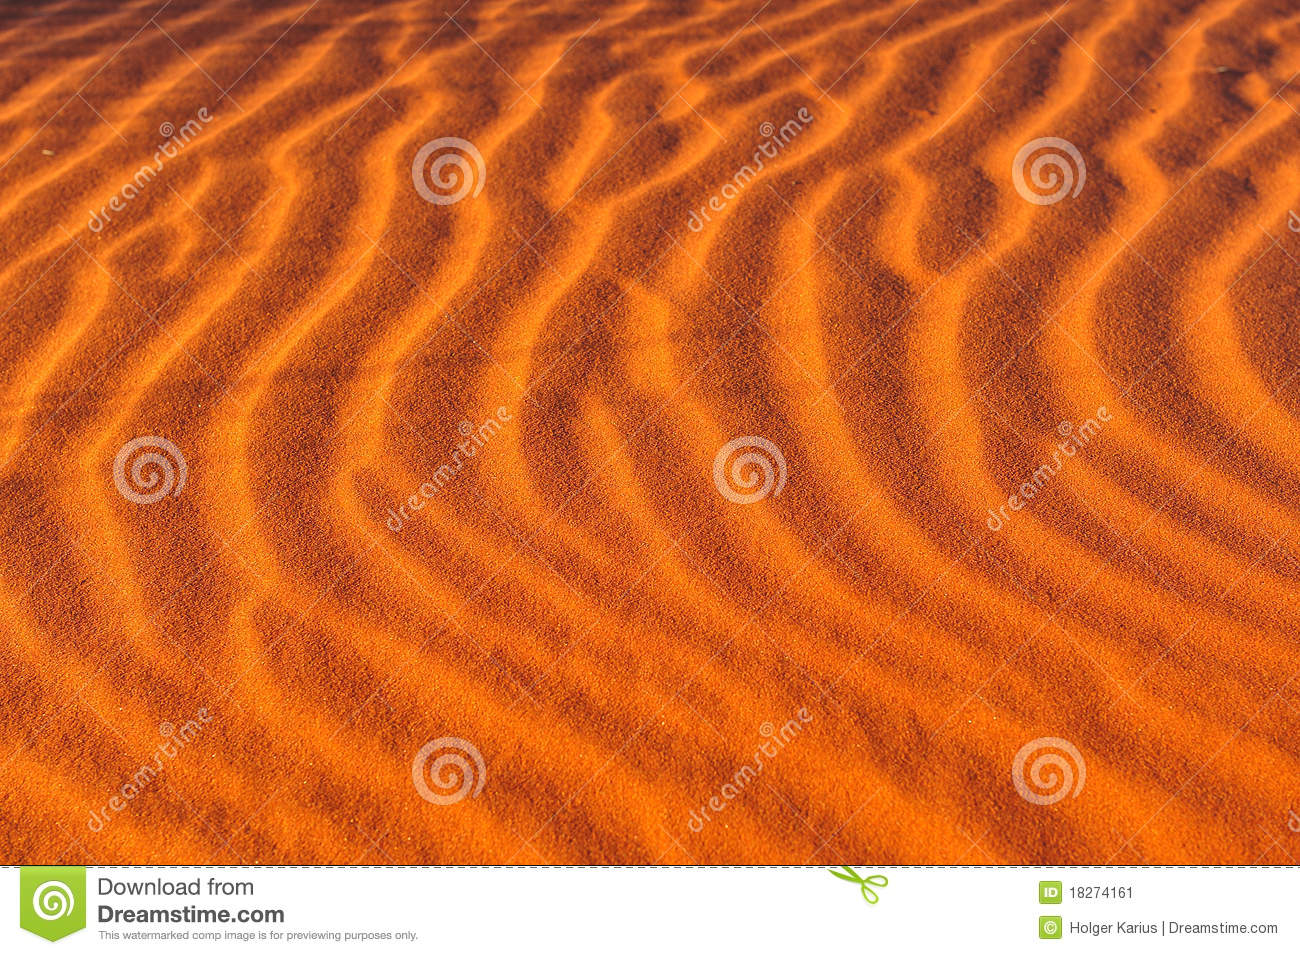 Sand Ripples (Patterns)